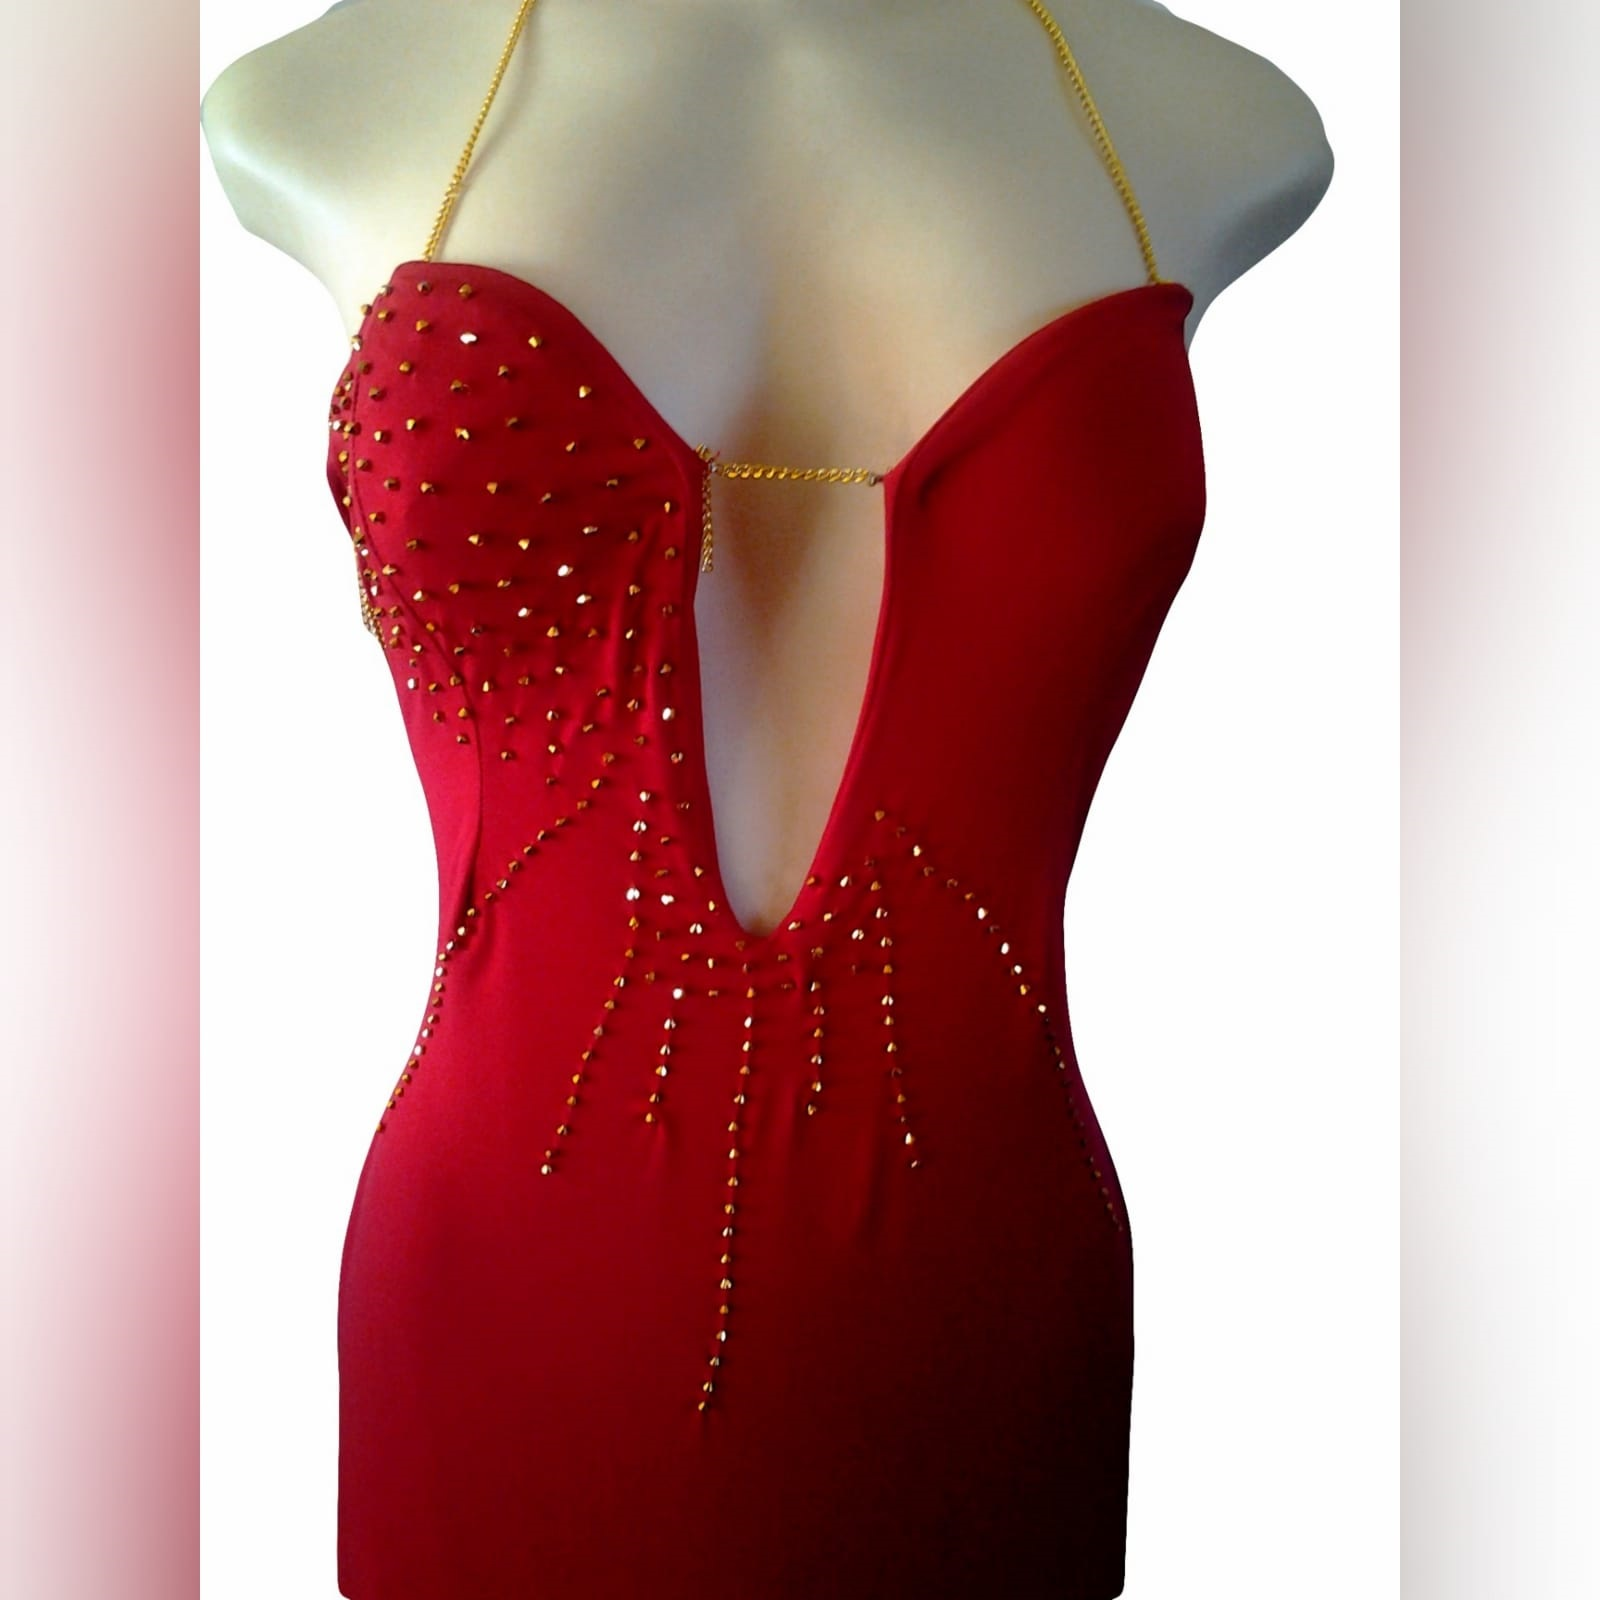 Red and gold long sexy gala dress 4 red and gold long sexy gala dress with an open back detailed with gold chain. With a slit detailed with gold beads.